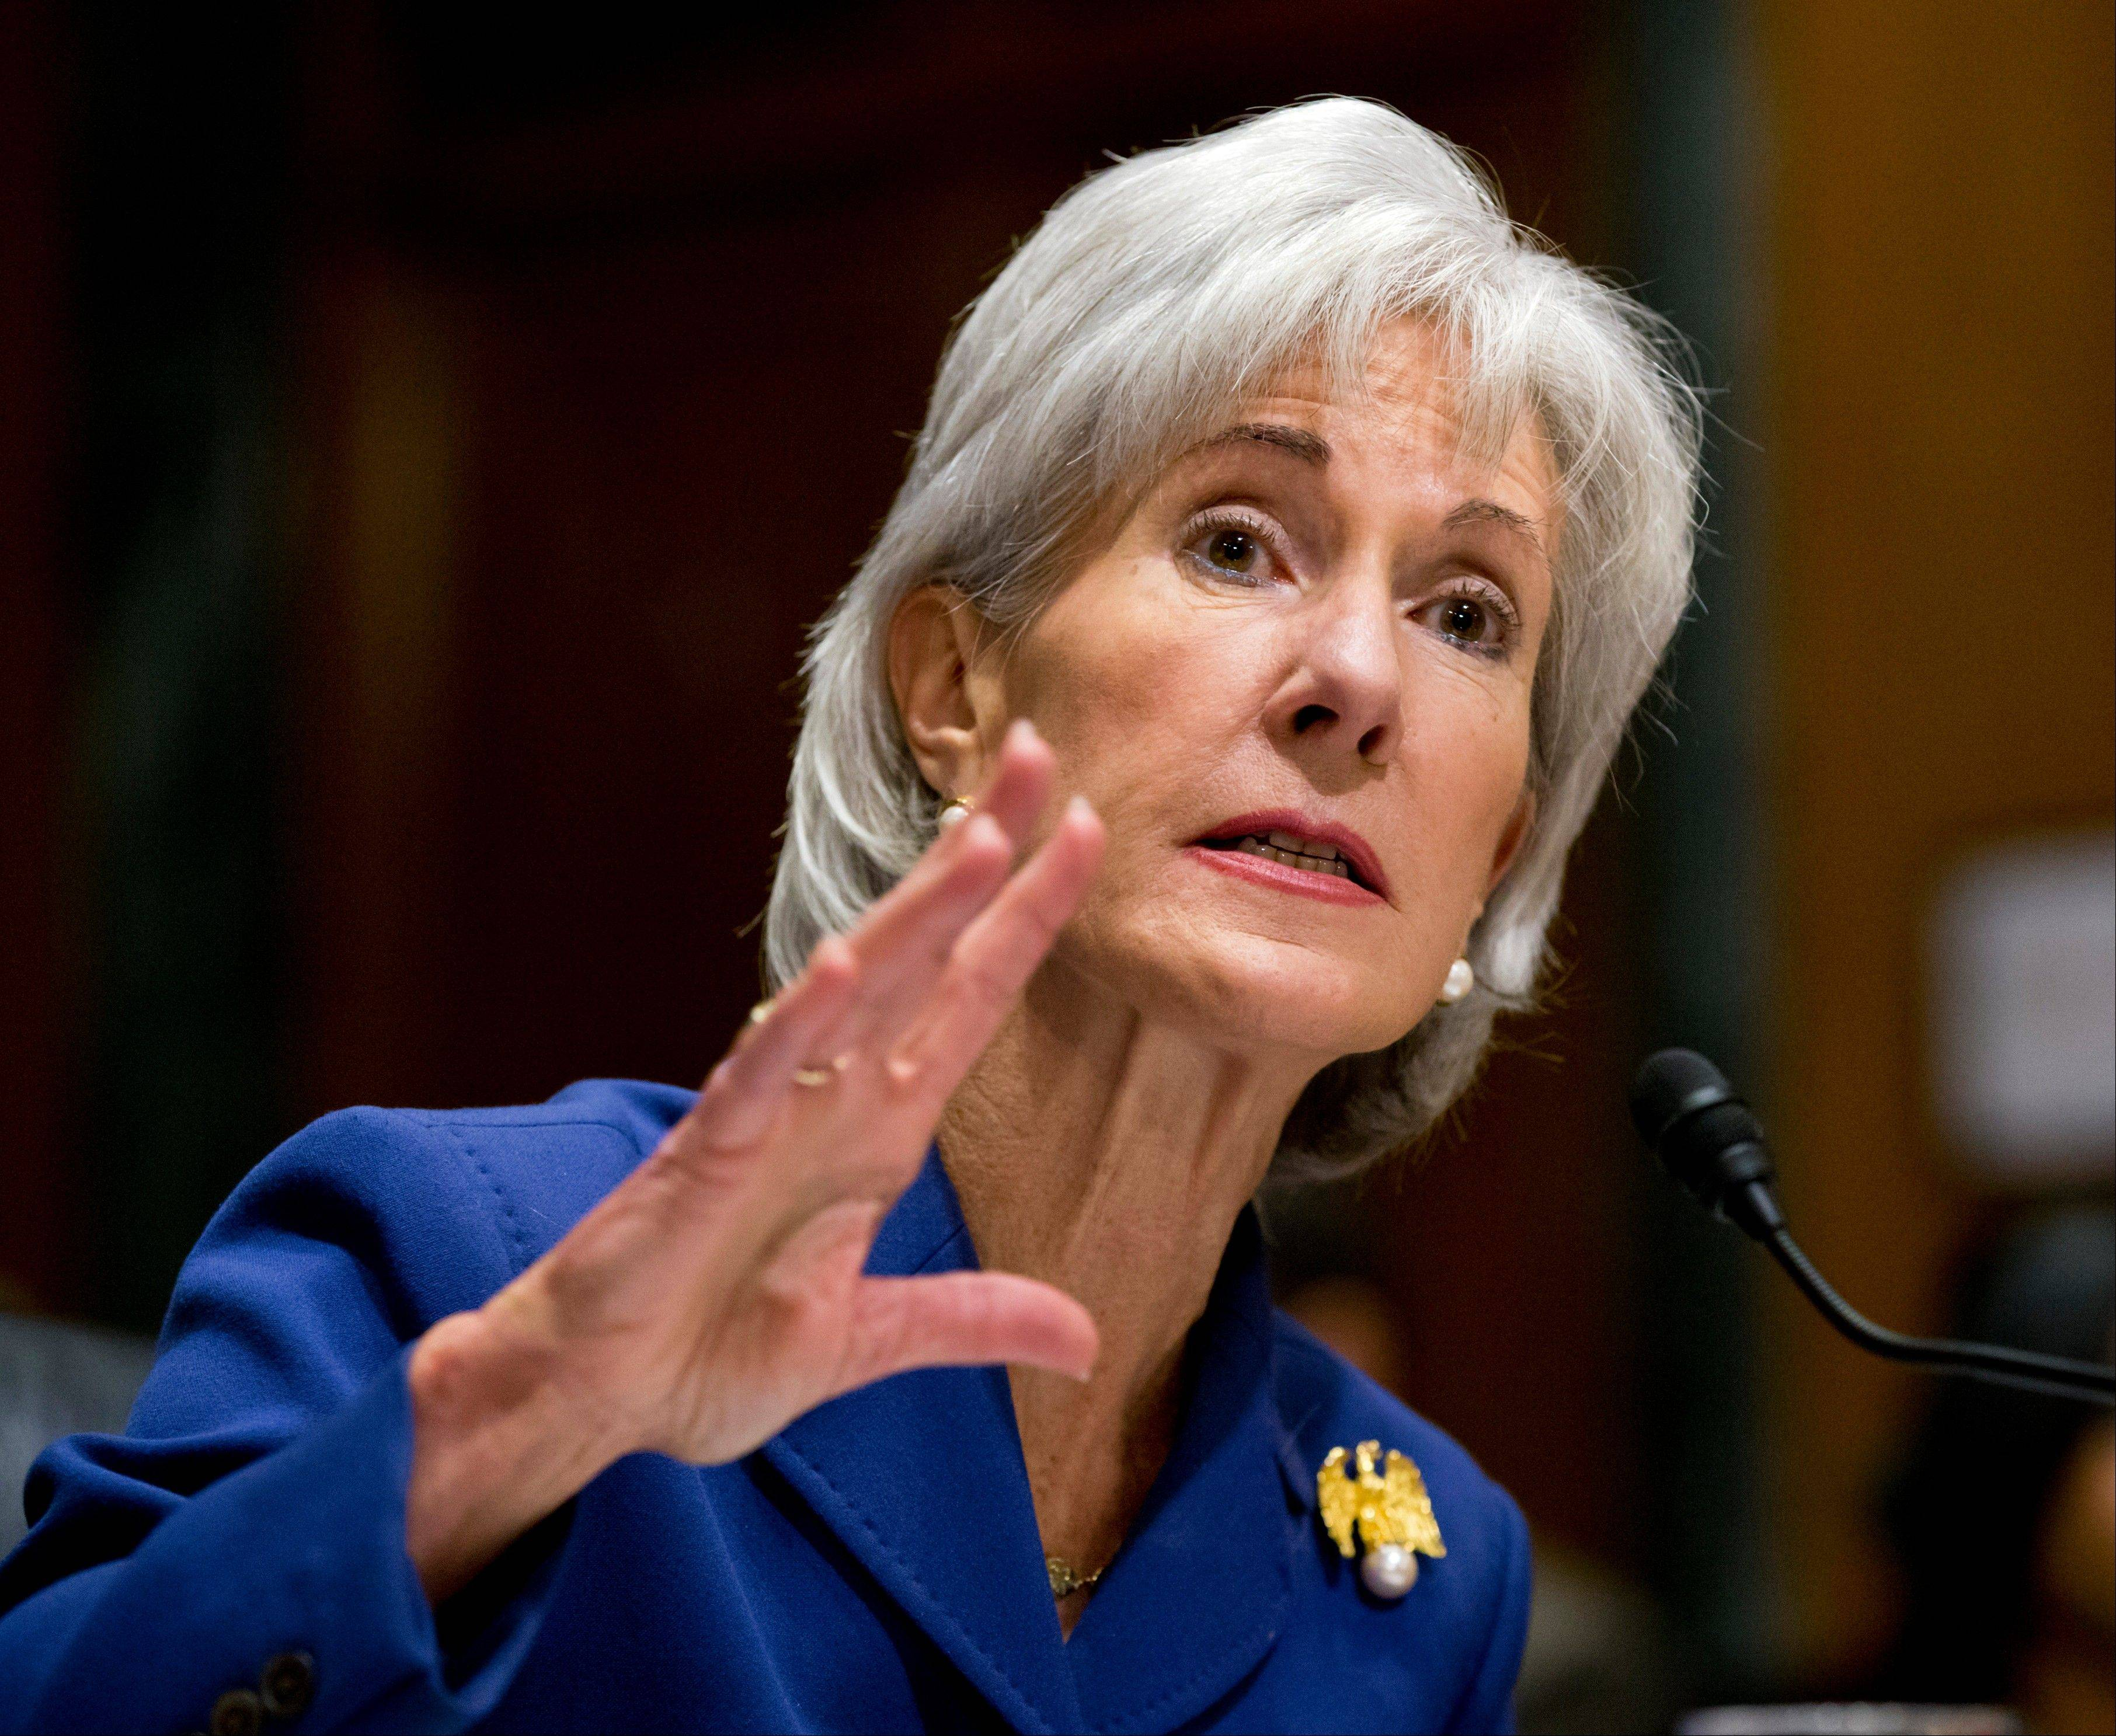 Health and Human Services Secretary Kathleen Sebelius testifies Wednesday before the Senate Finance Committee hearing on the difficulties plaguing the implementation of the Affordable Care Act.